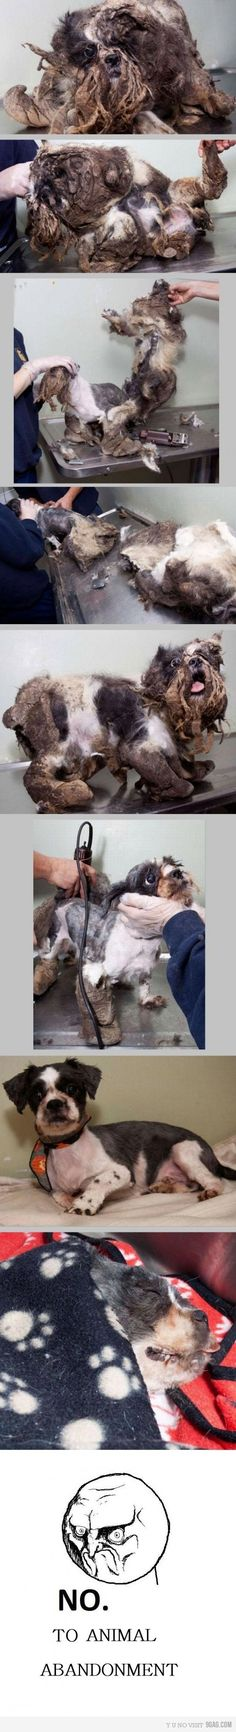 Animal abuse.: Doggie ́S, Animal Rights, Animal Cruelty, Pet, Animal Abuse, First Haircut, Animal Abandonment, Poor Baby, So Sad